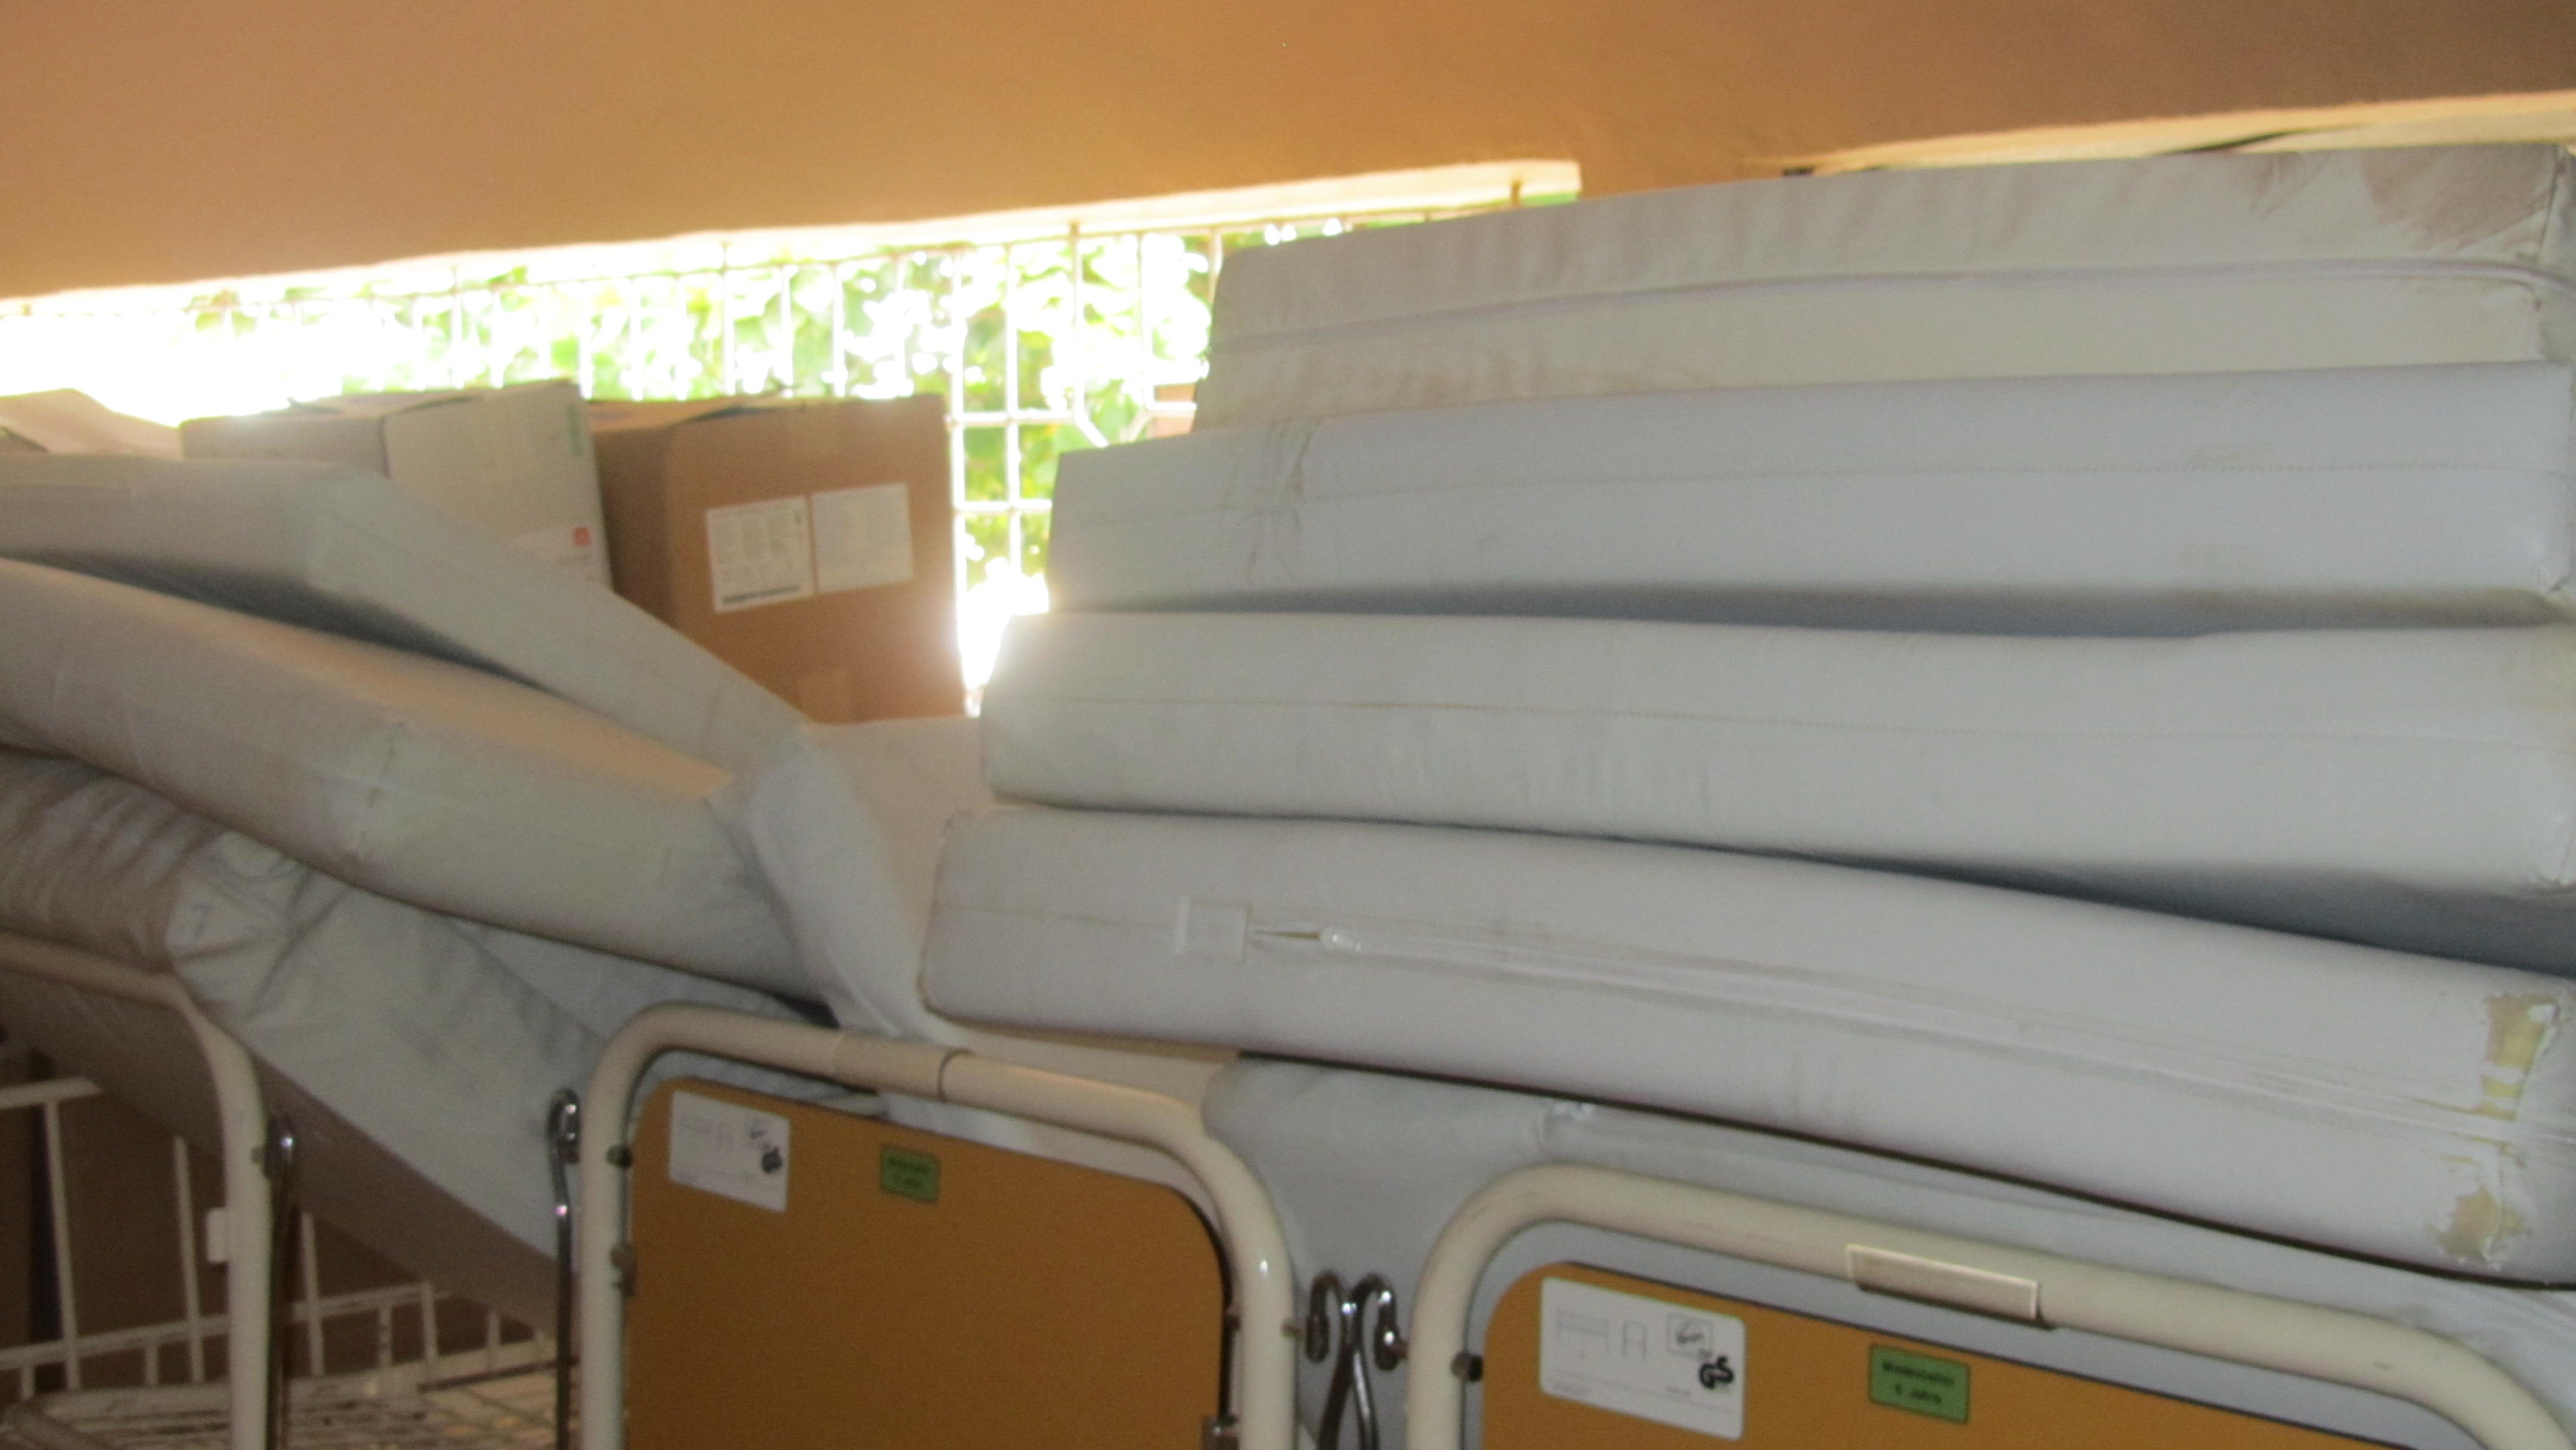 MATERIALS FOR THE HOSPITAL